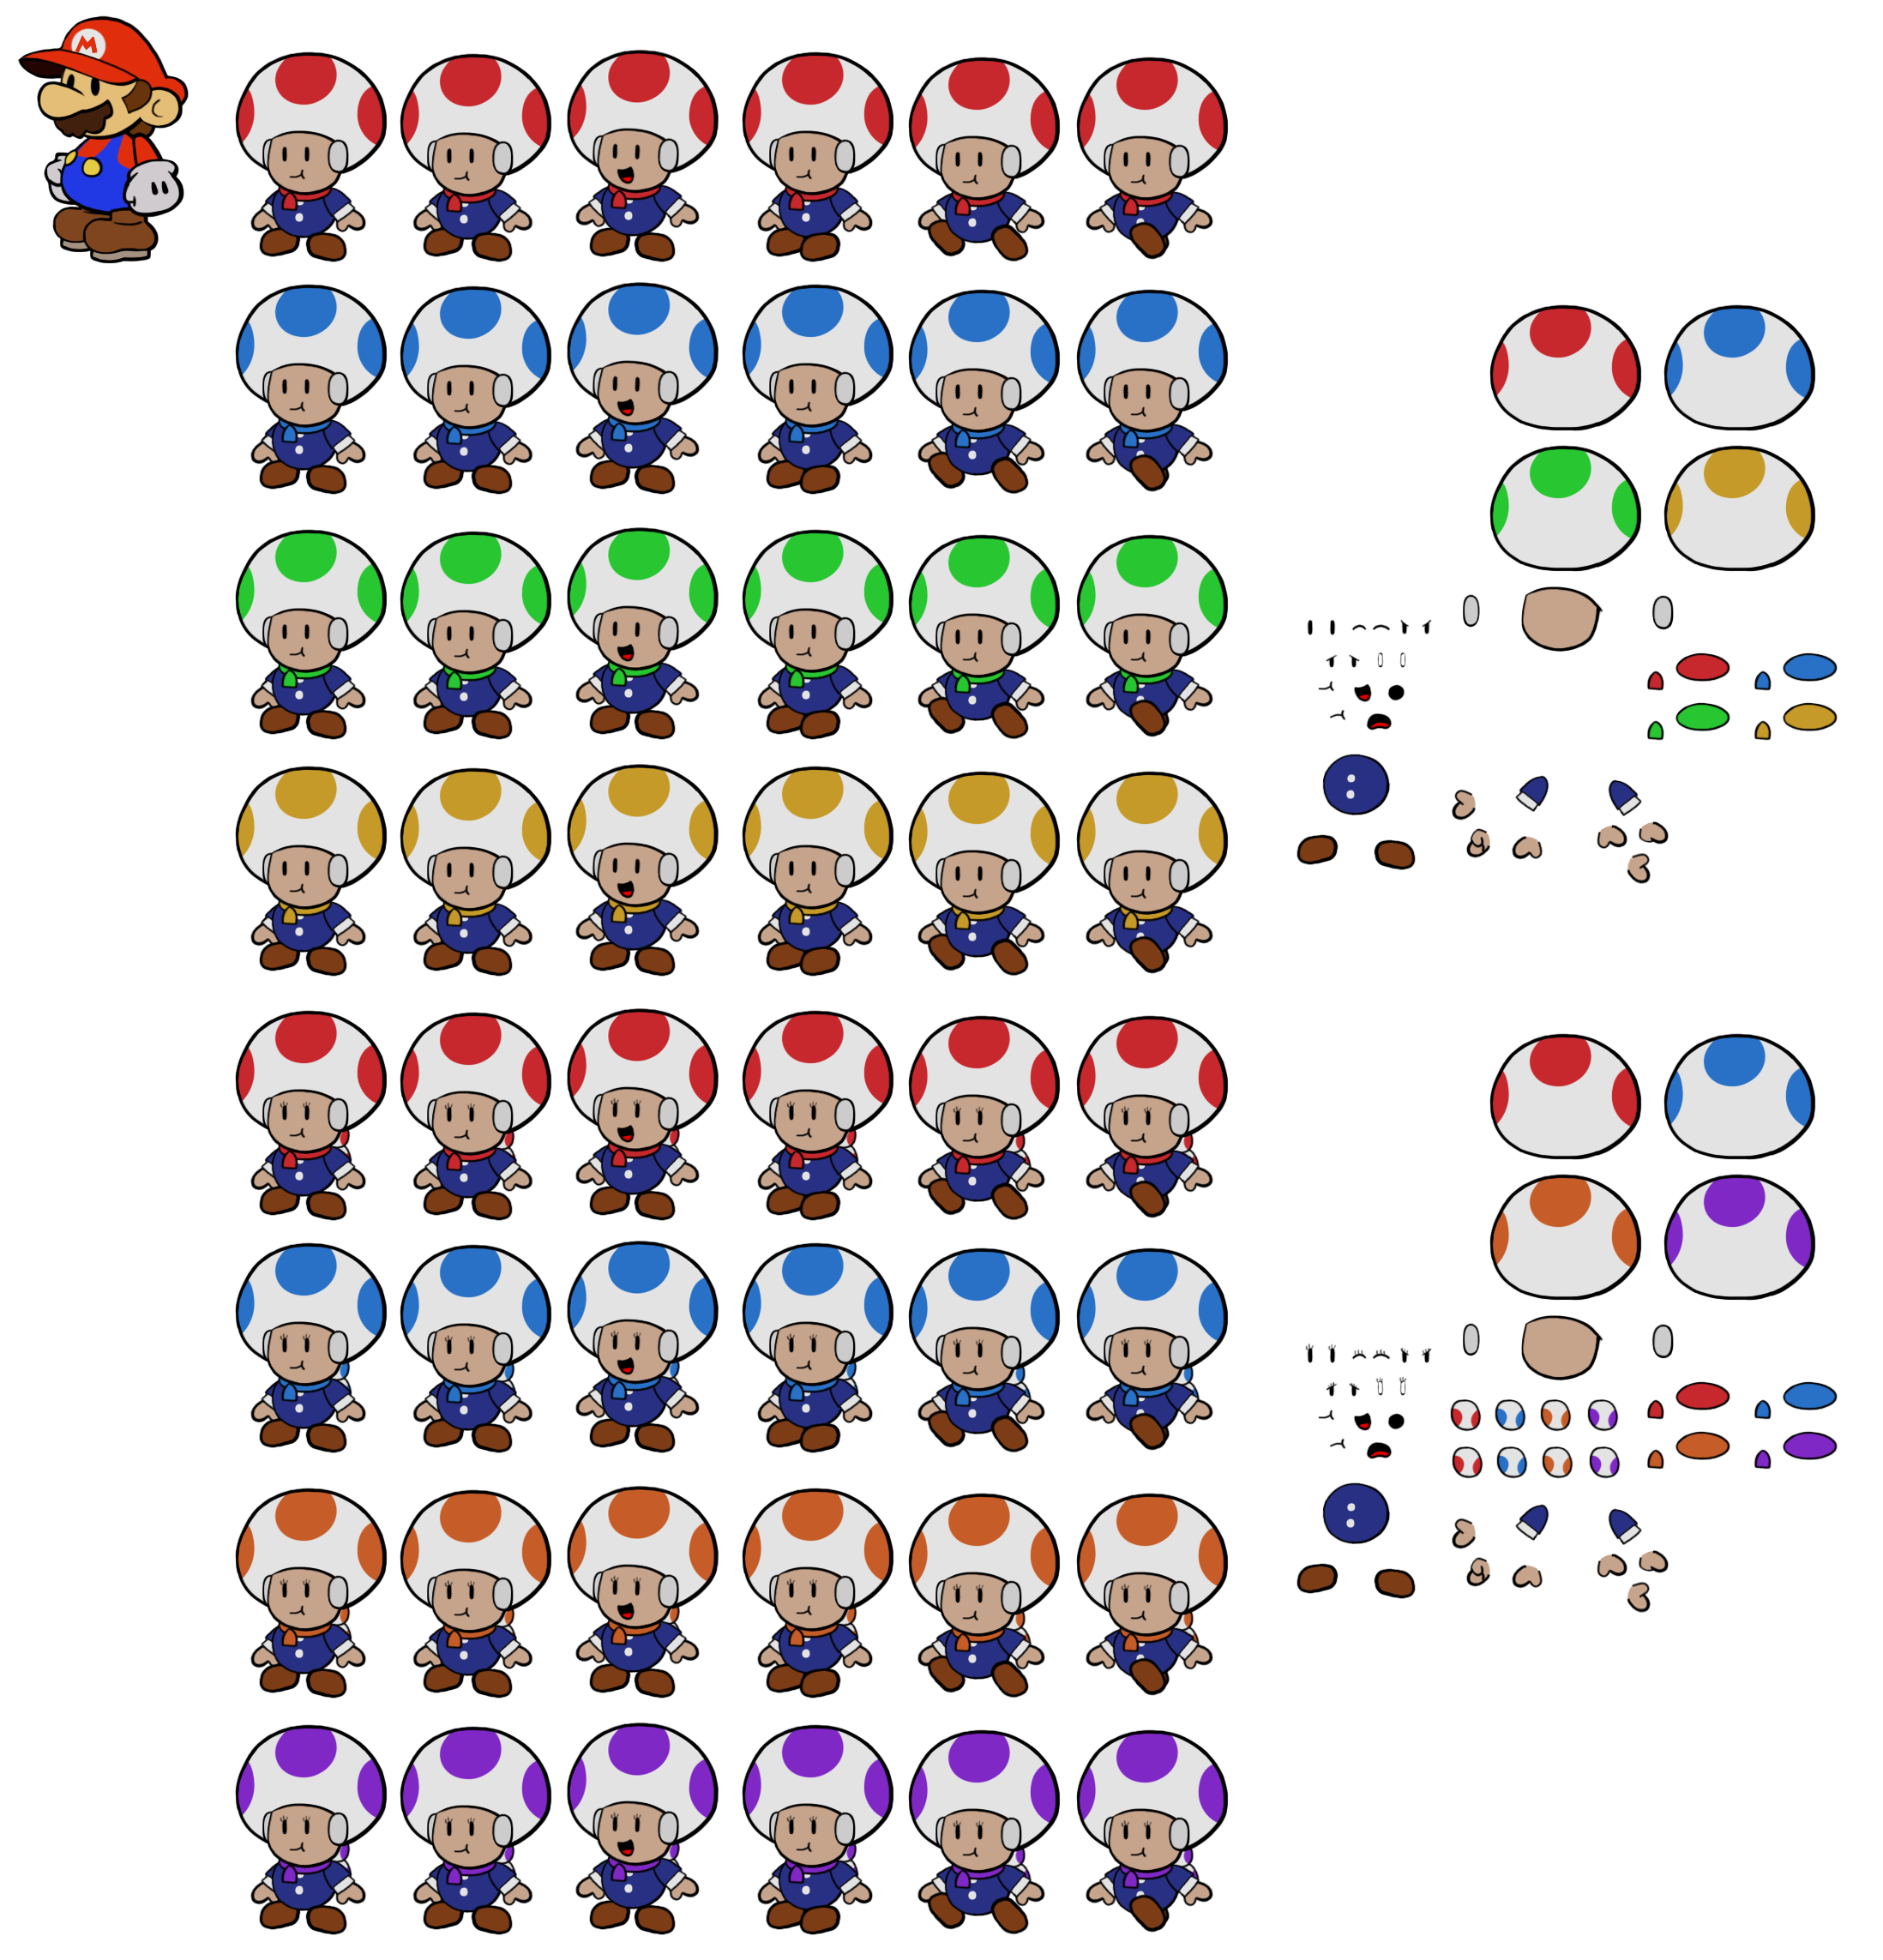 Shiver Toads (Paper Mario Style)